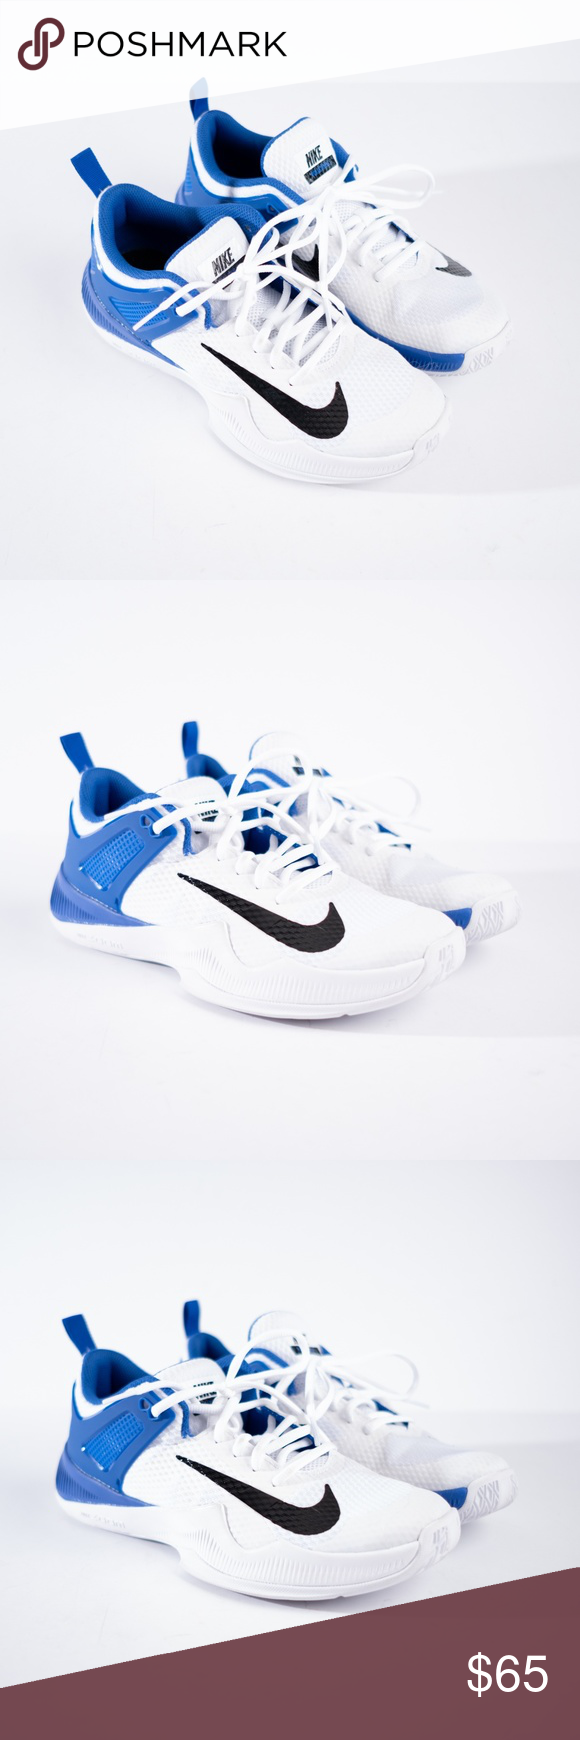 Nike Air Zoom Hyperace Women S Volleyball Shoes 9 Volleyball Shoes Nike Air Zoom Nike